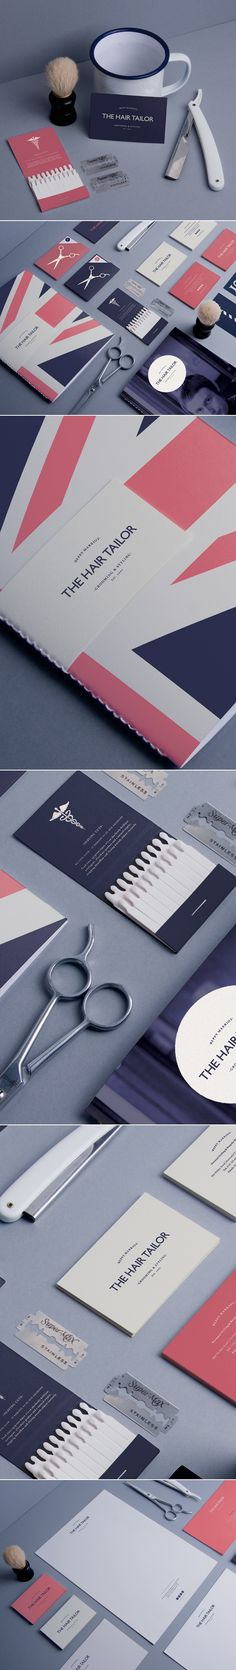 Unique Branding Design, The Hair Tailor #branding #design (http://www.pinterest.com/aldenchong/)